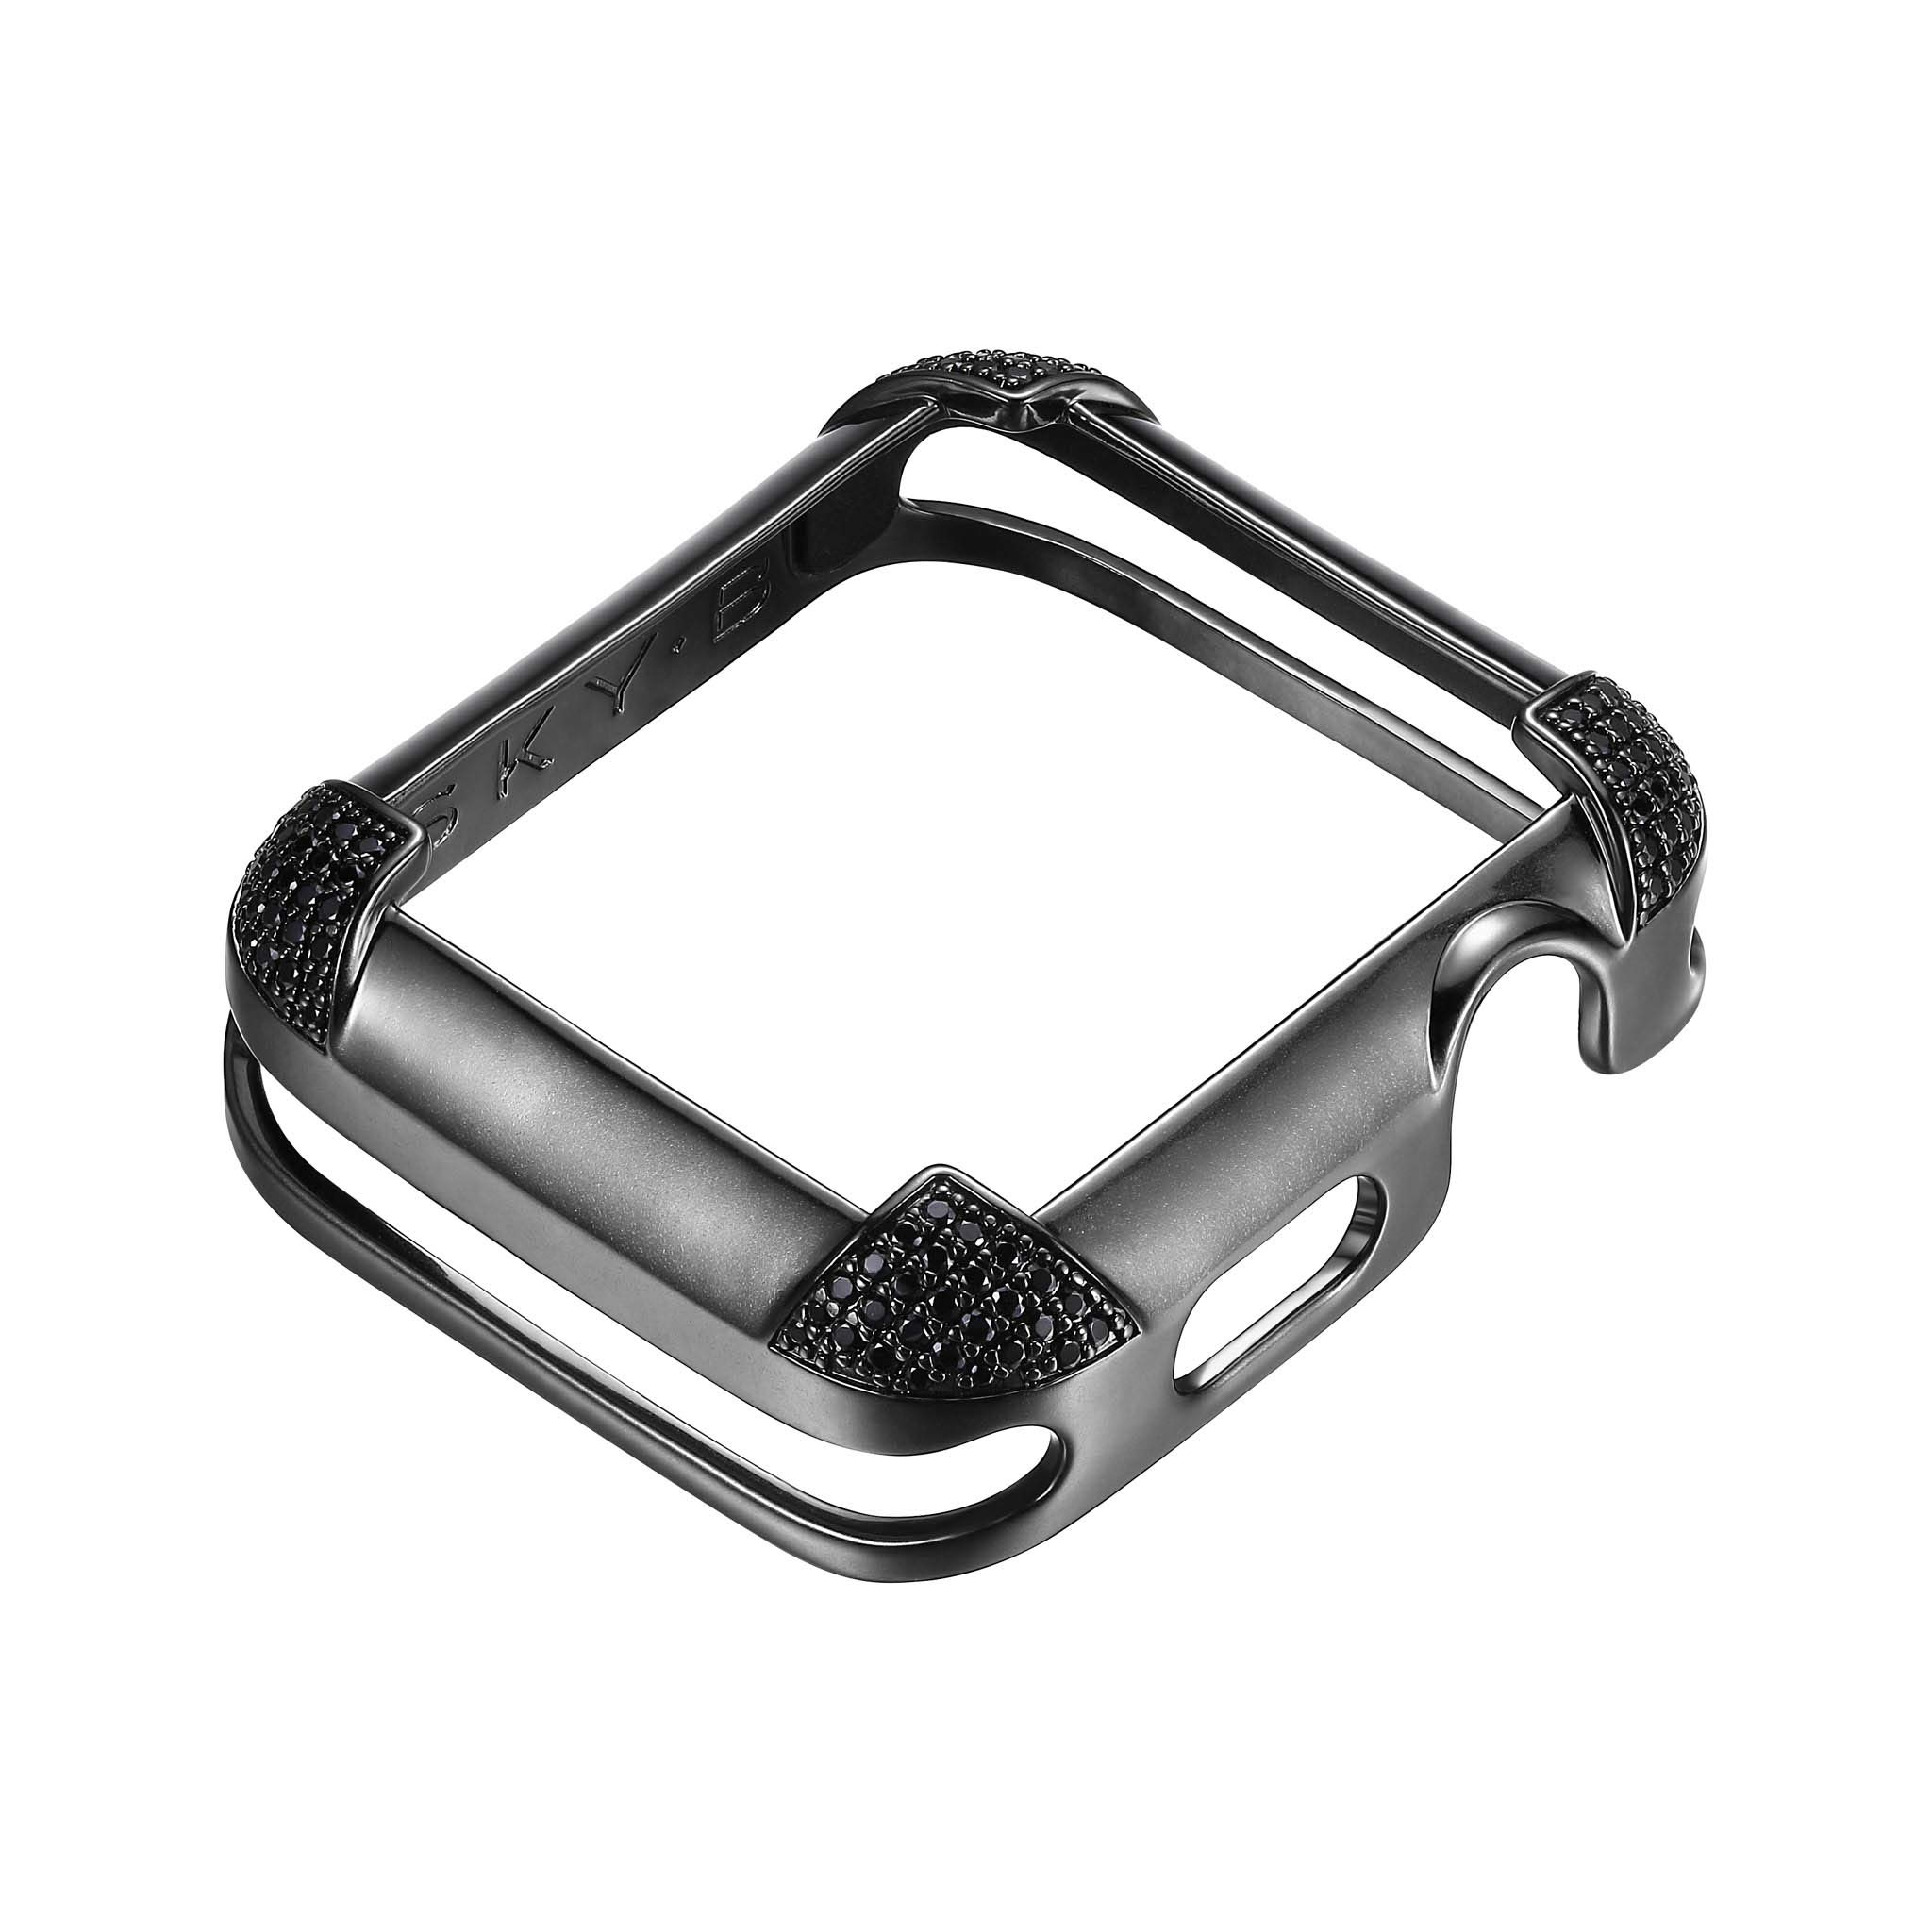 Matte Black Rhodium Plated Jewelry-Style Apple Watch Case with Genuine Spinel Pavé Corners - Large (Fits 42mm iWatch) by SkyB (Image #2)